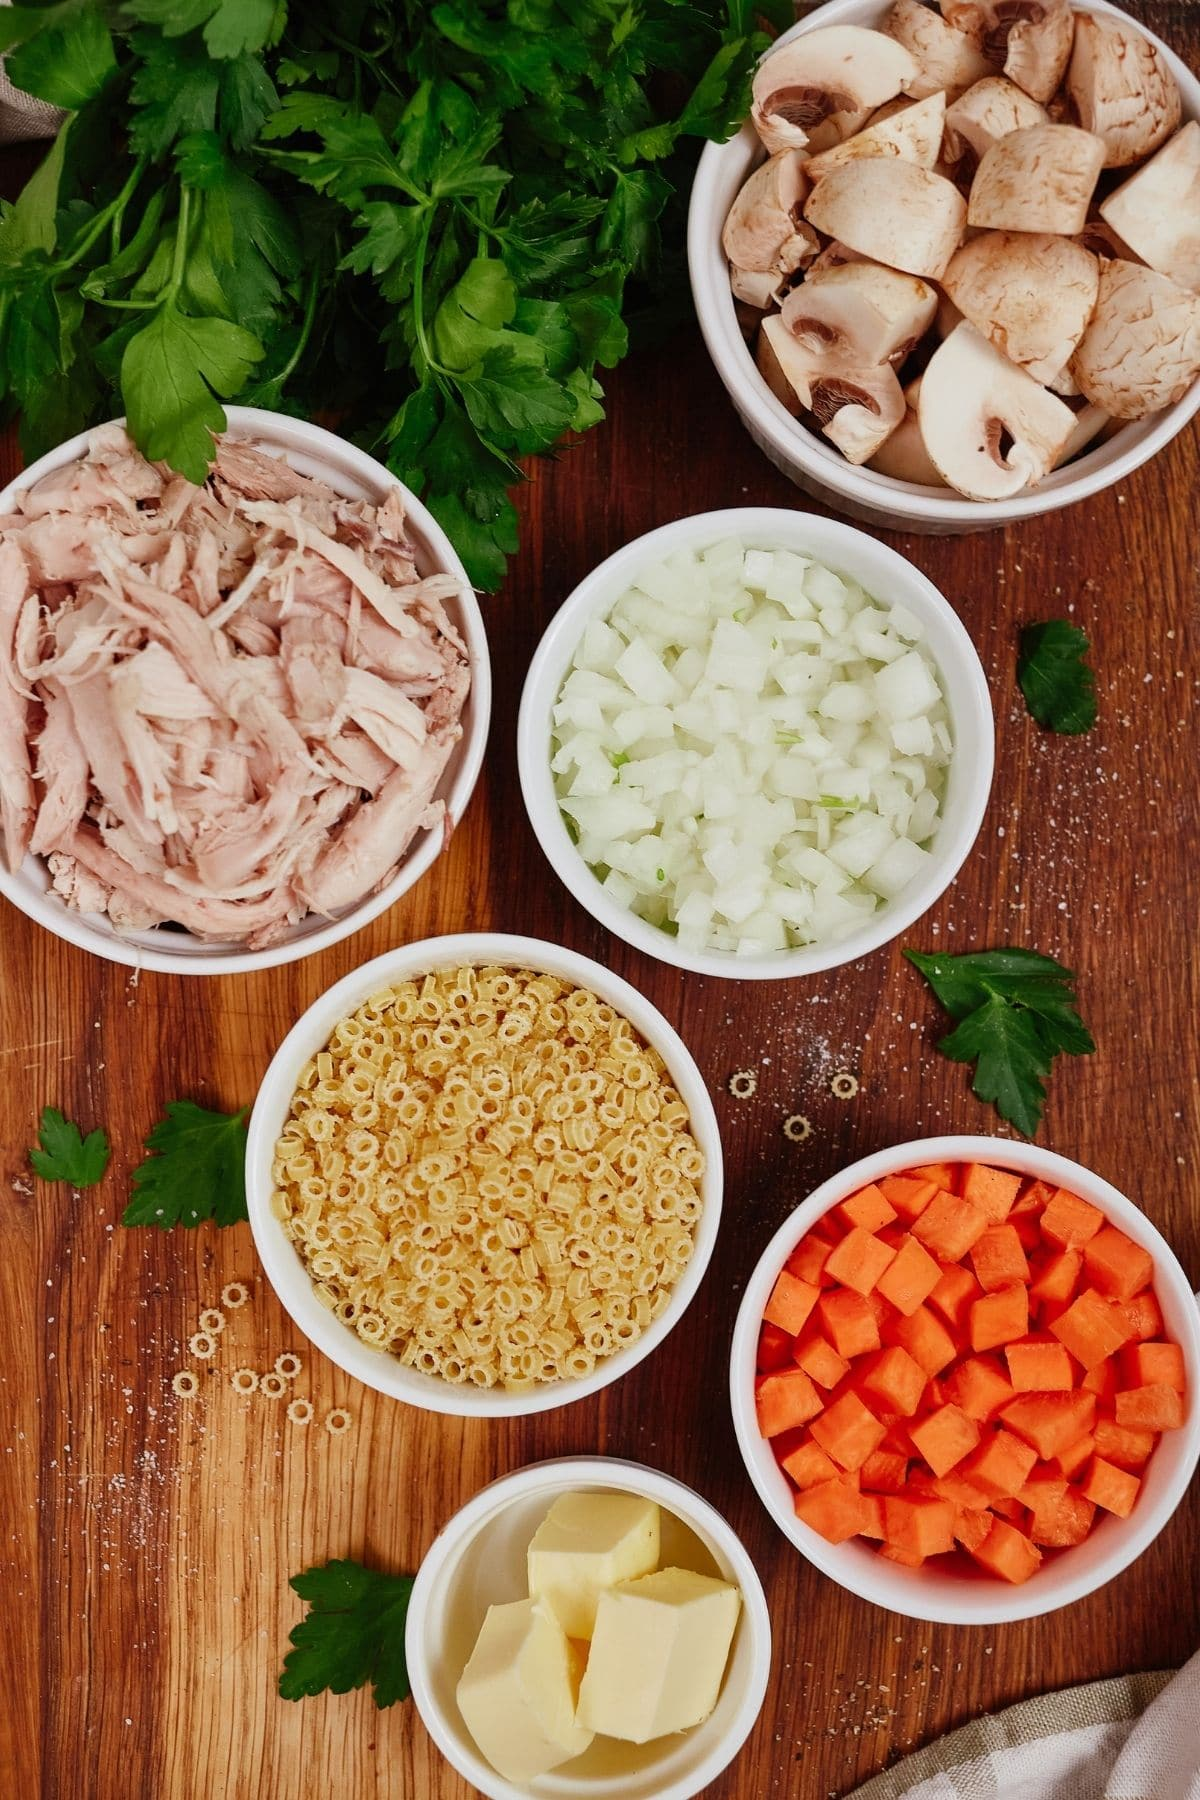 White bowls of vegetables and chicken on cutting board